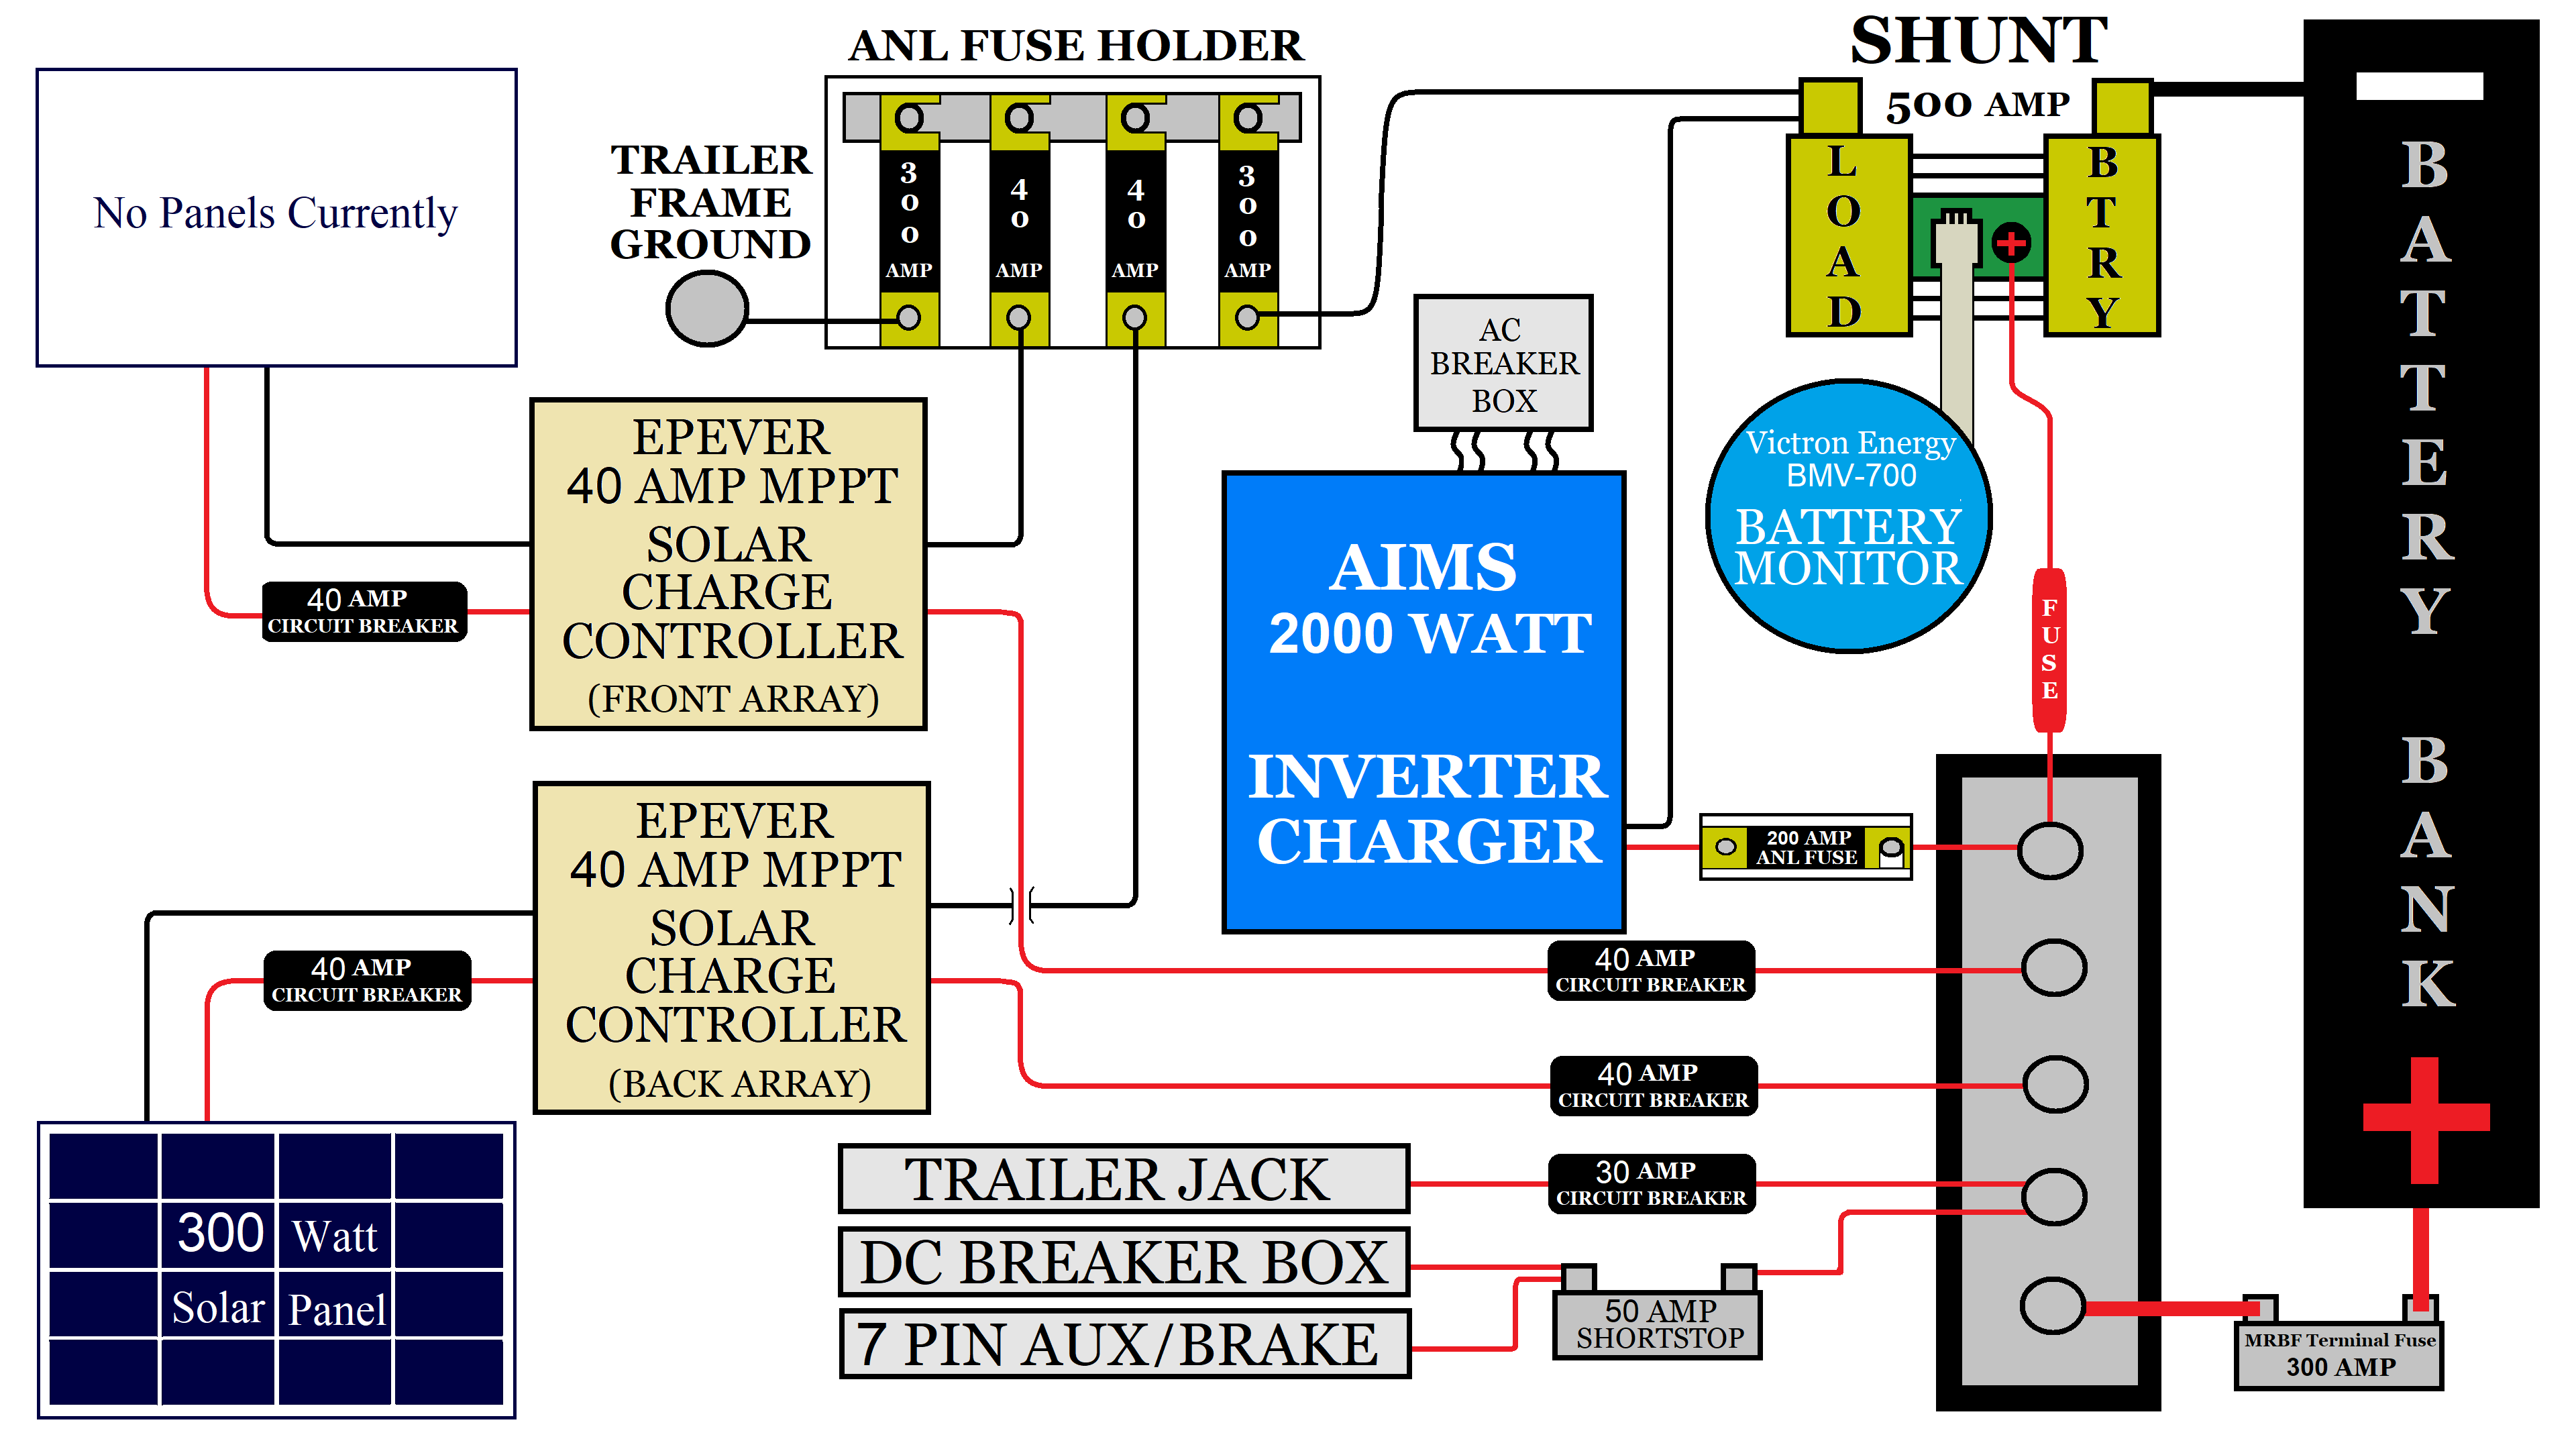 REDONE-Wiring-DC  Amp Rv Schematic Wiring Diagram on twist lock cord, service box, receptacle electrical, breaker box,